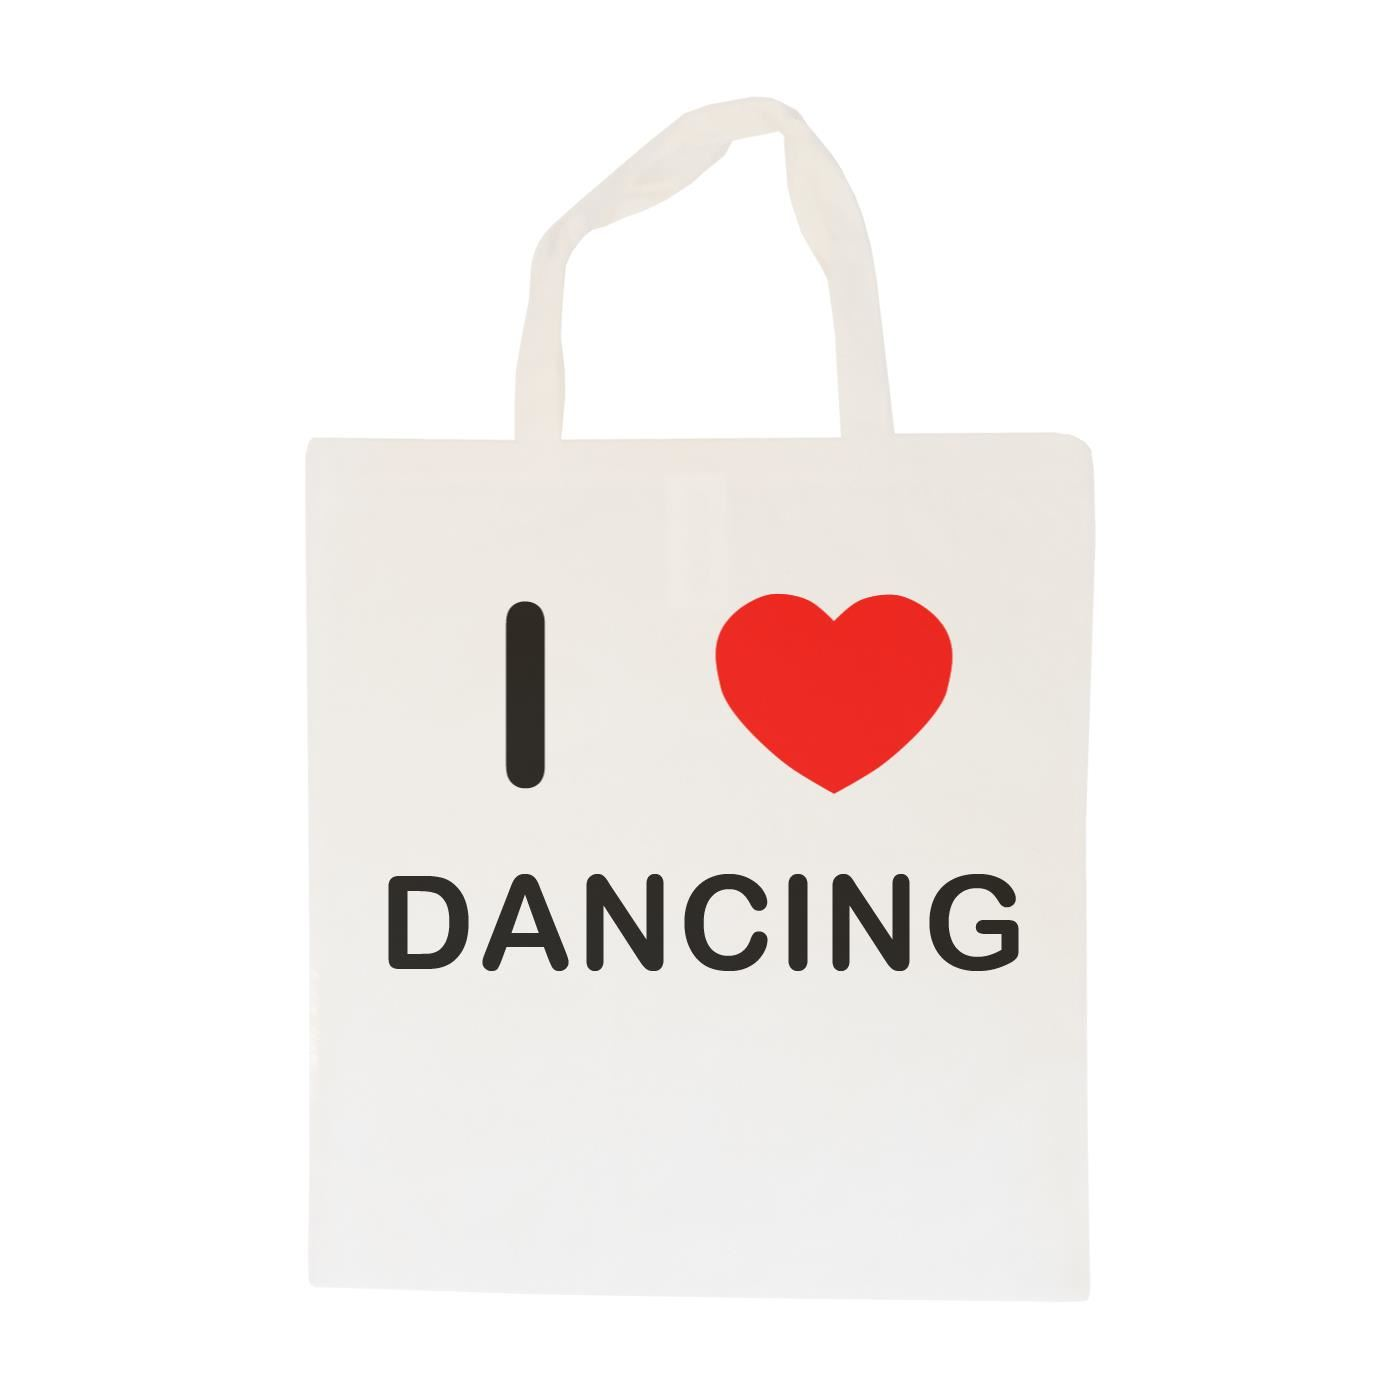 I Love Dancing - Cotton Bag | Size choice Tote, Shopper or Sling